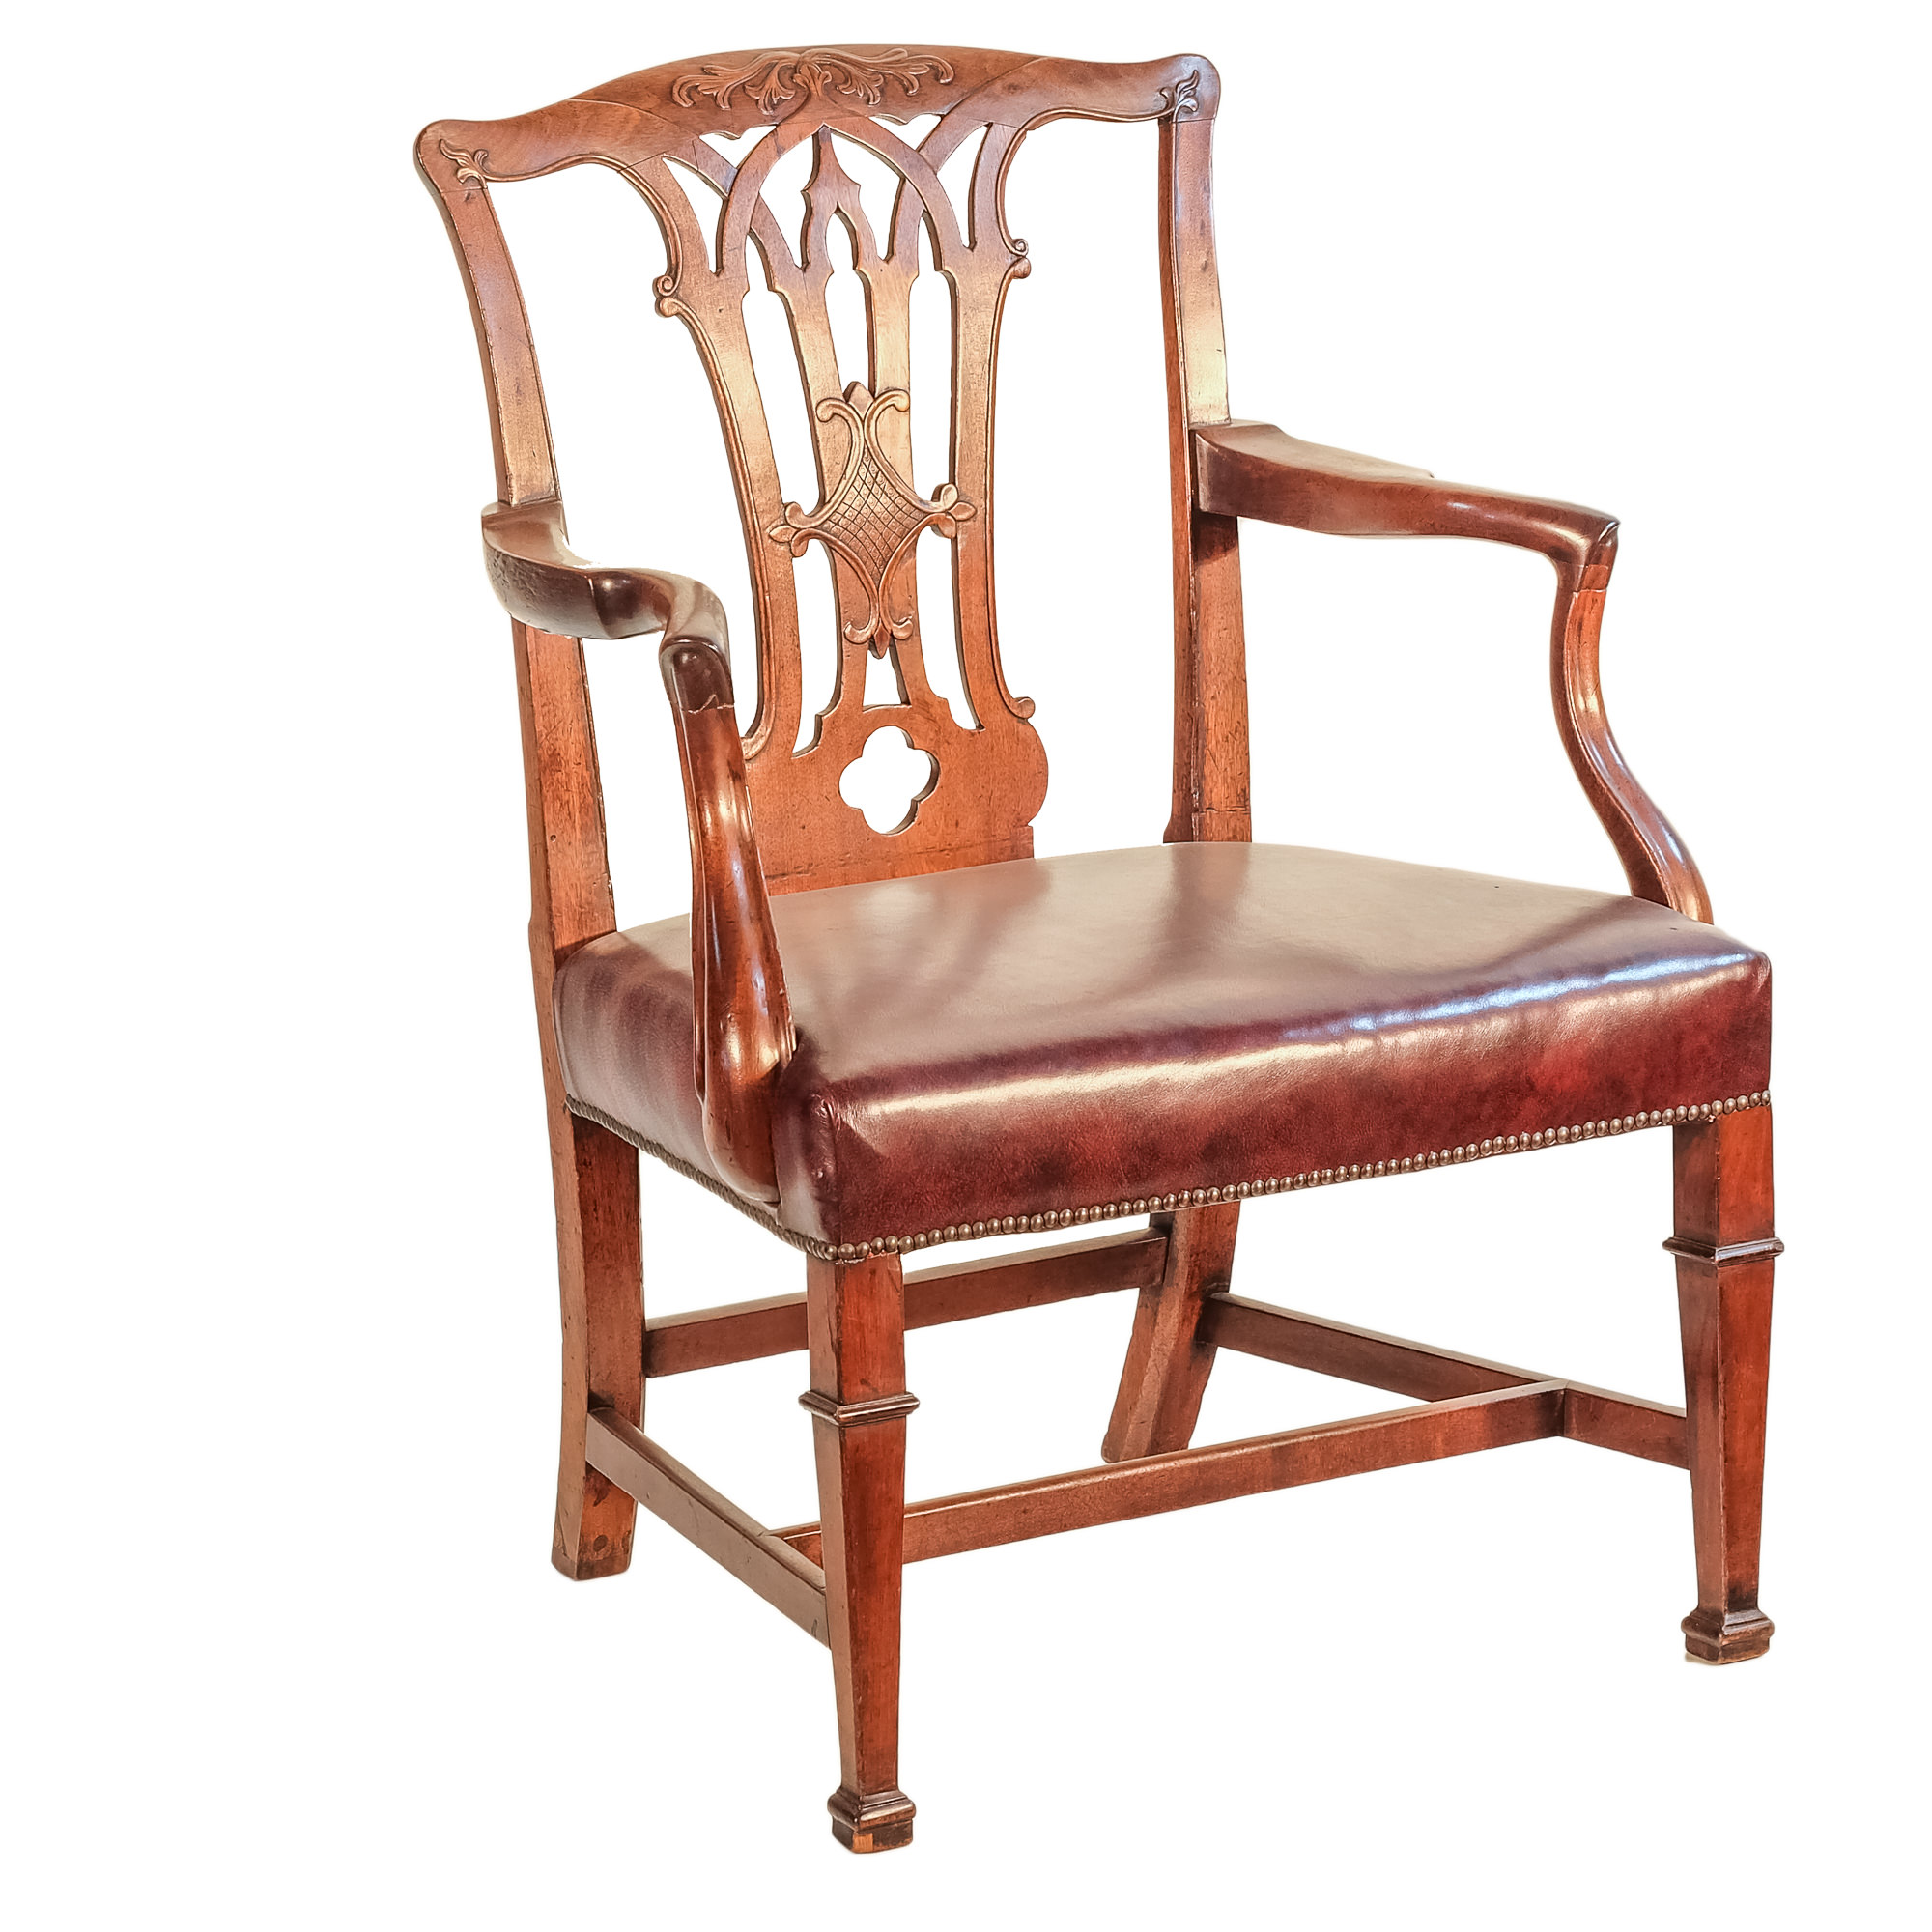 'Chippendale Style Mahogany Elbow Chair 19th Century '